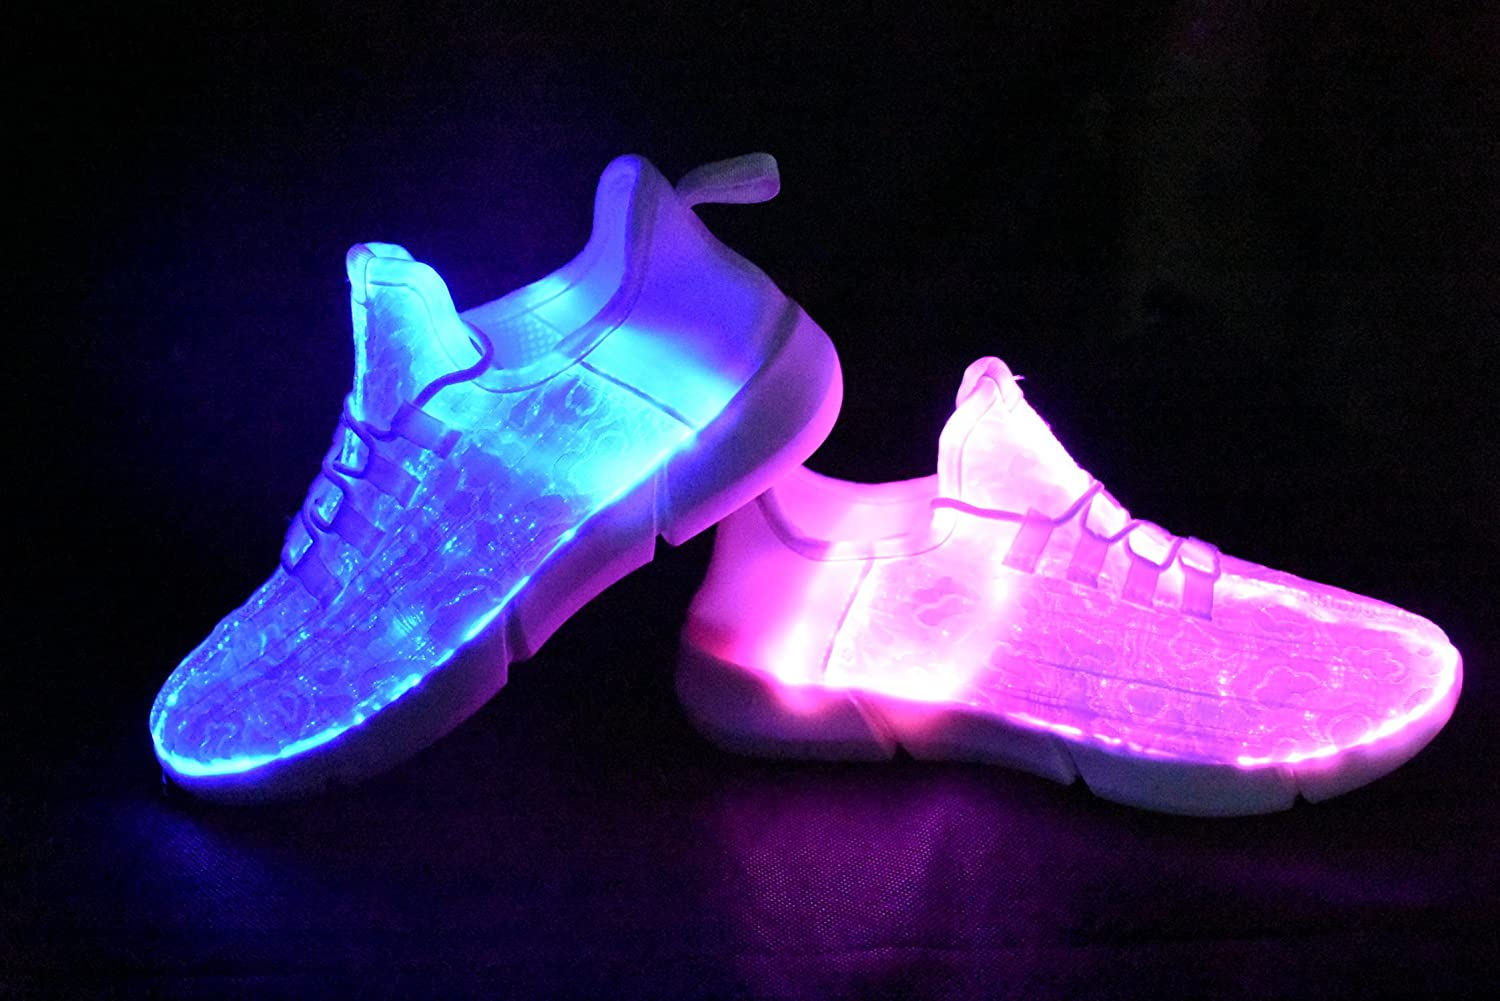 ROXY ROSE Fiber-Optic Light Shoes White LED Flashing Sneakers for Kids & Women Festivals Running Shoes B078SQZRNQ 10 B(M) US|White